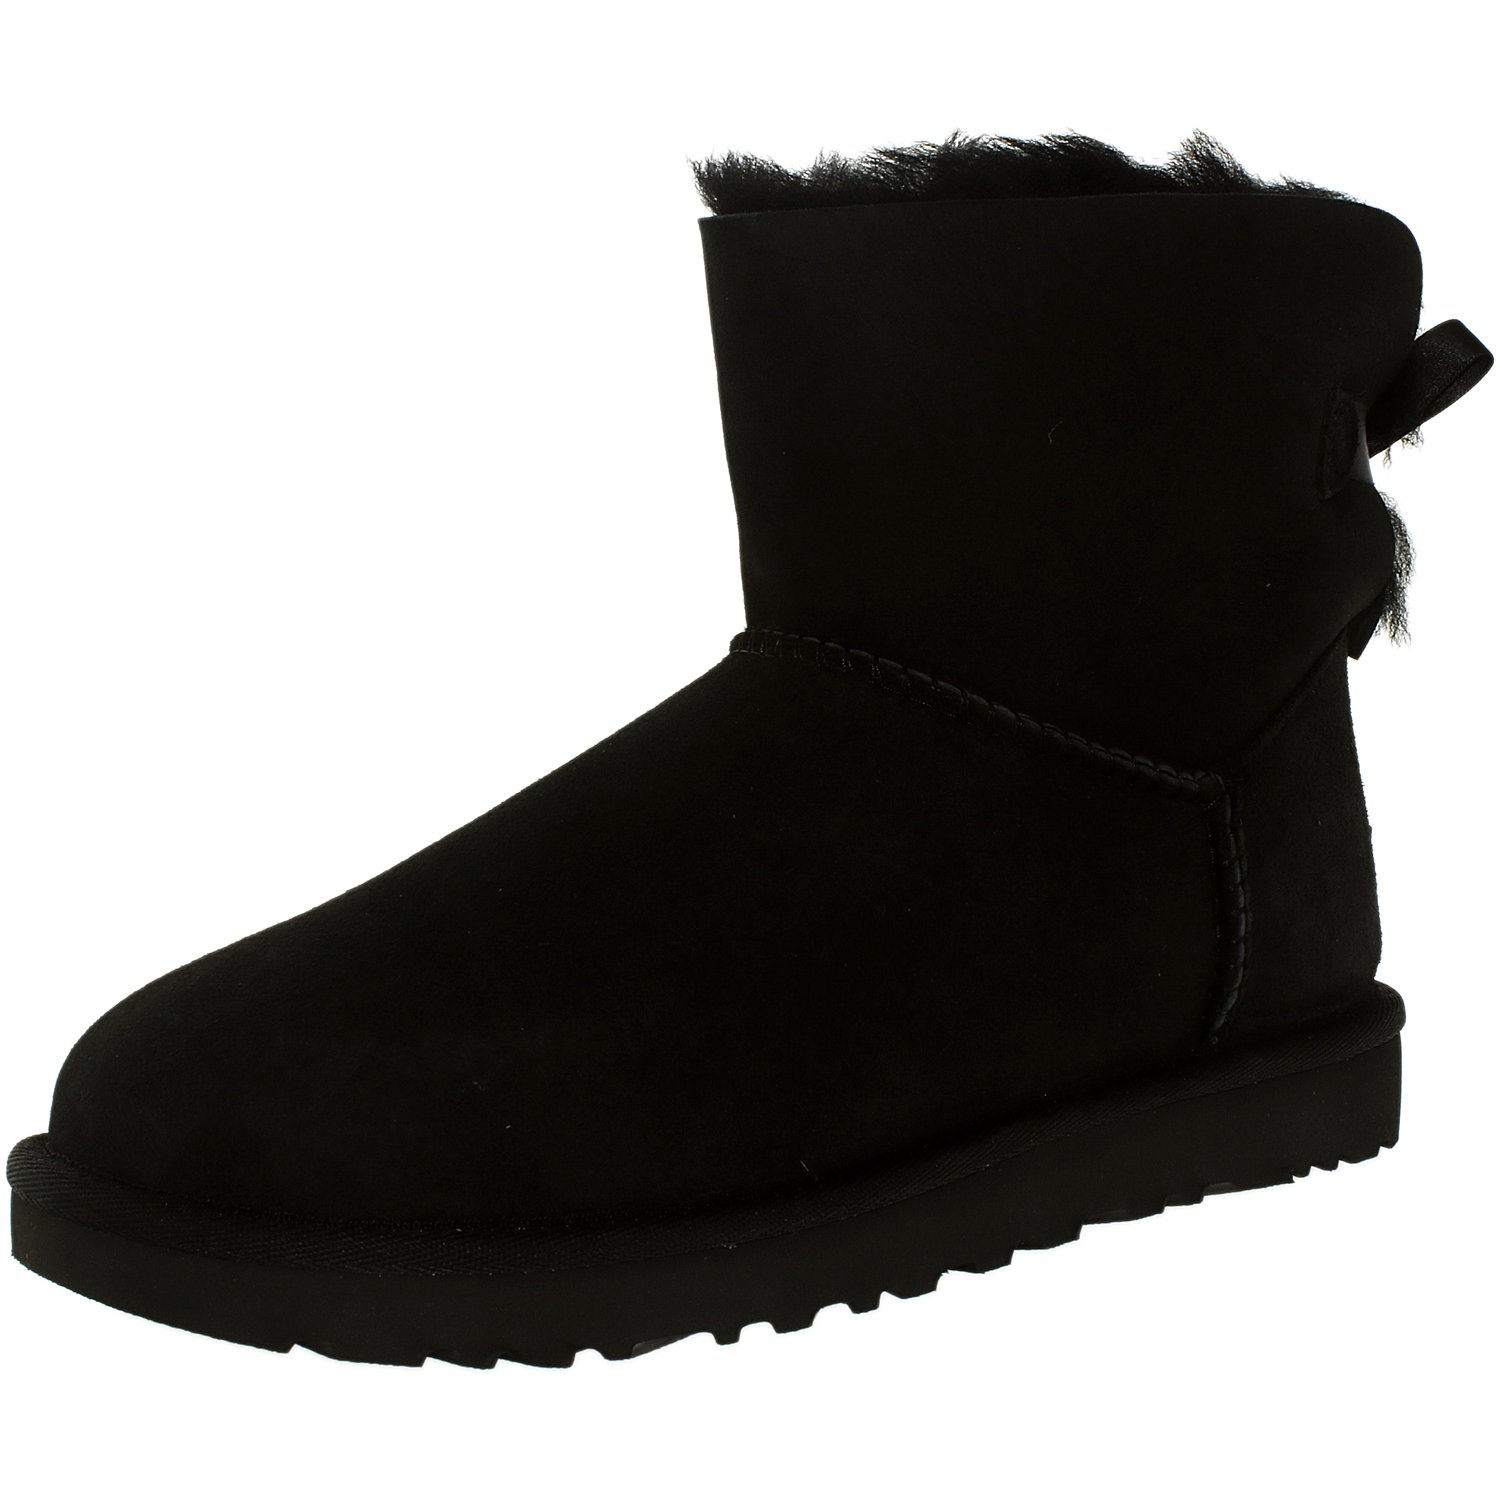 Ugg Women's Mini Bailey Bow Black Ankle-High Suede Boot - 8M